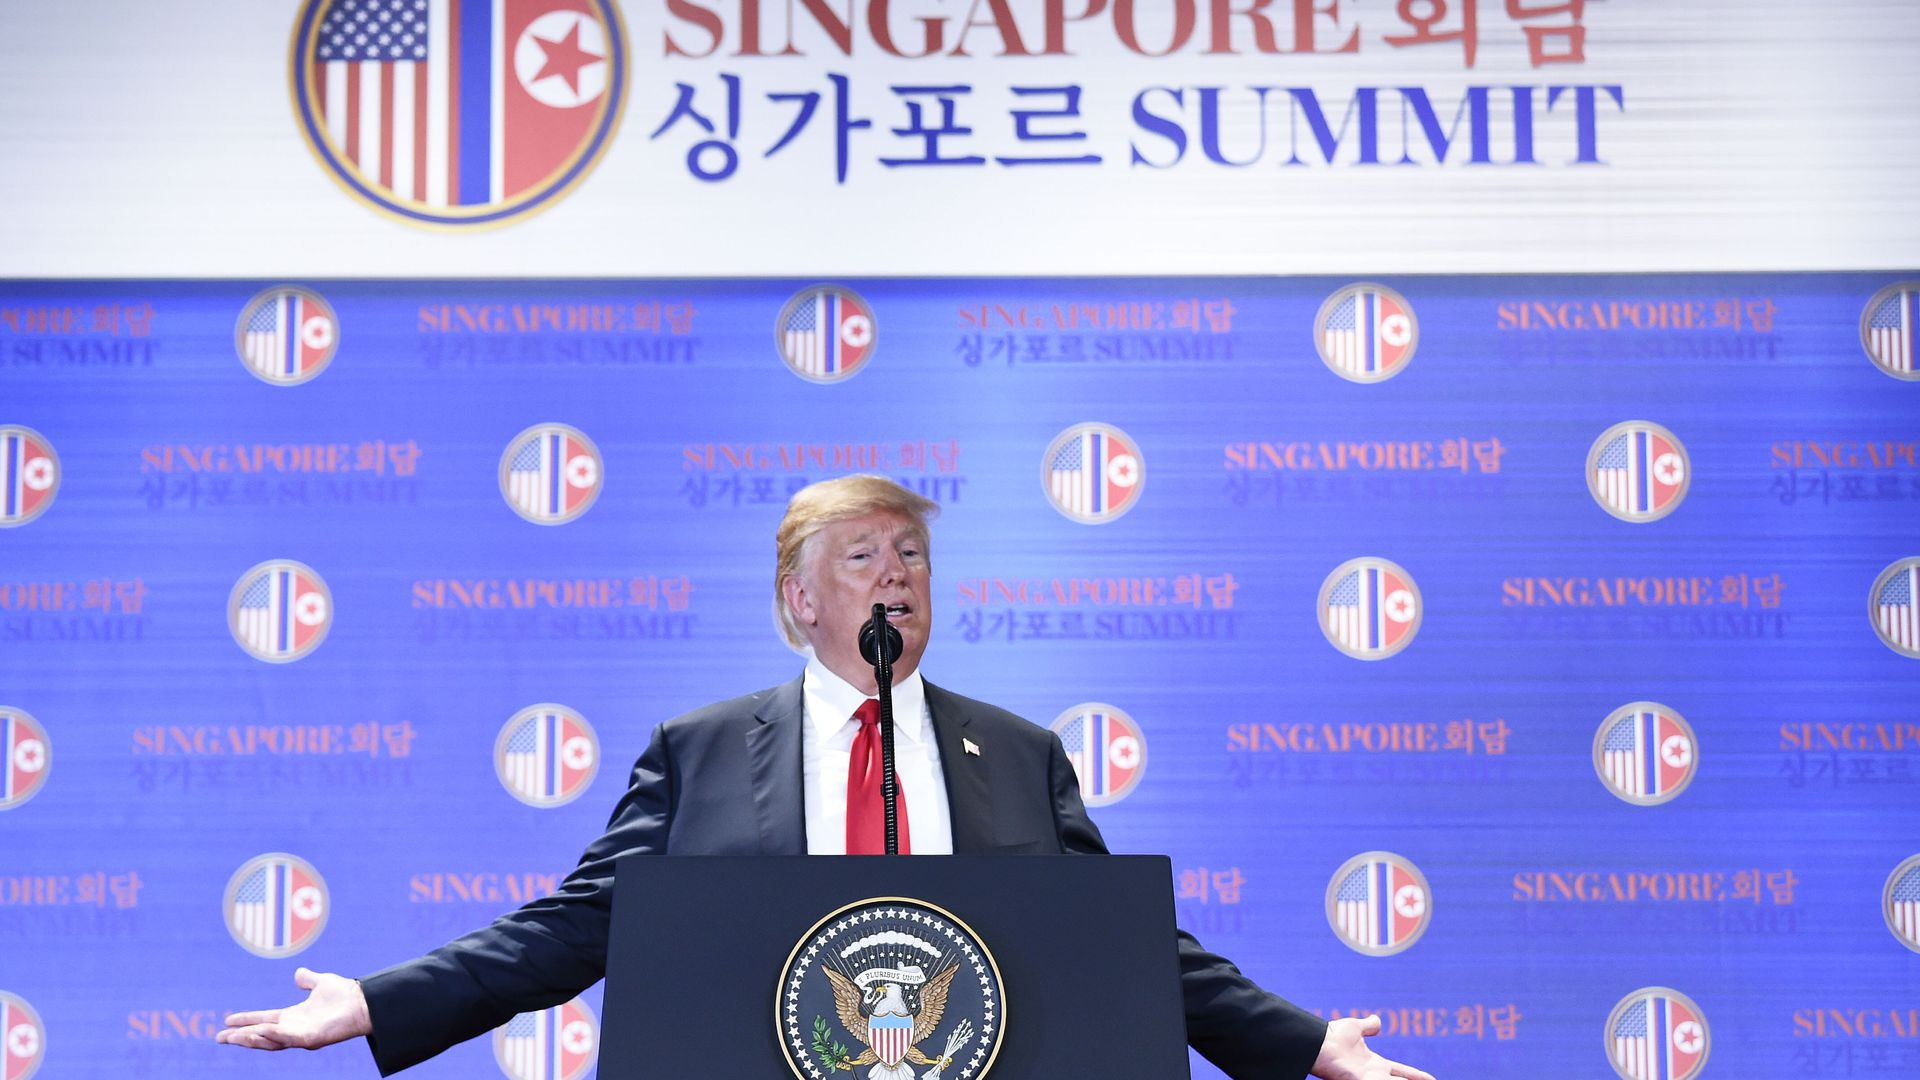 Scoop: Classified Israeli report raises doubts over Trump-Kim summit